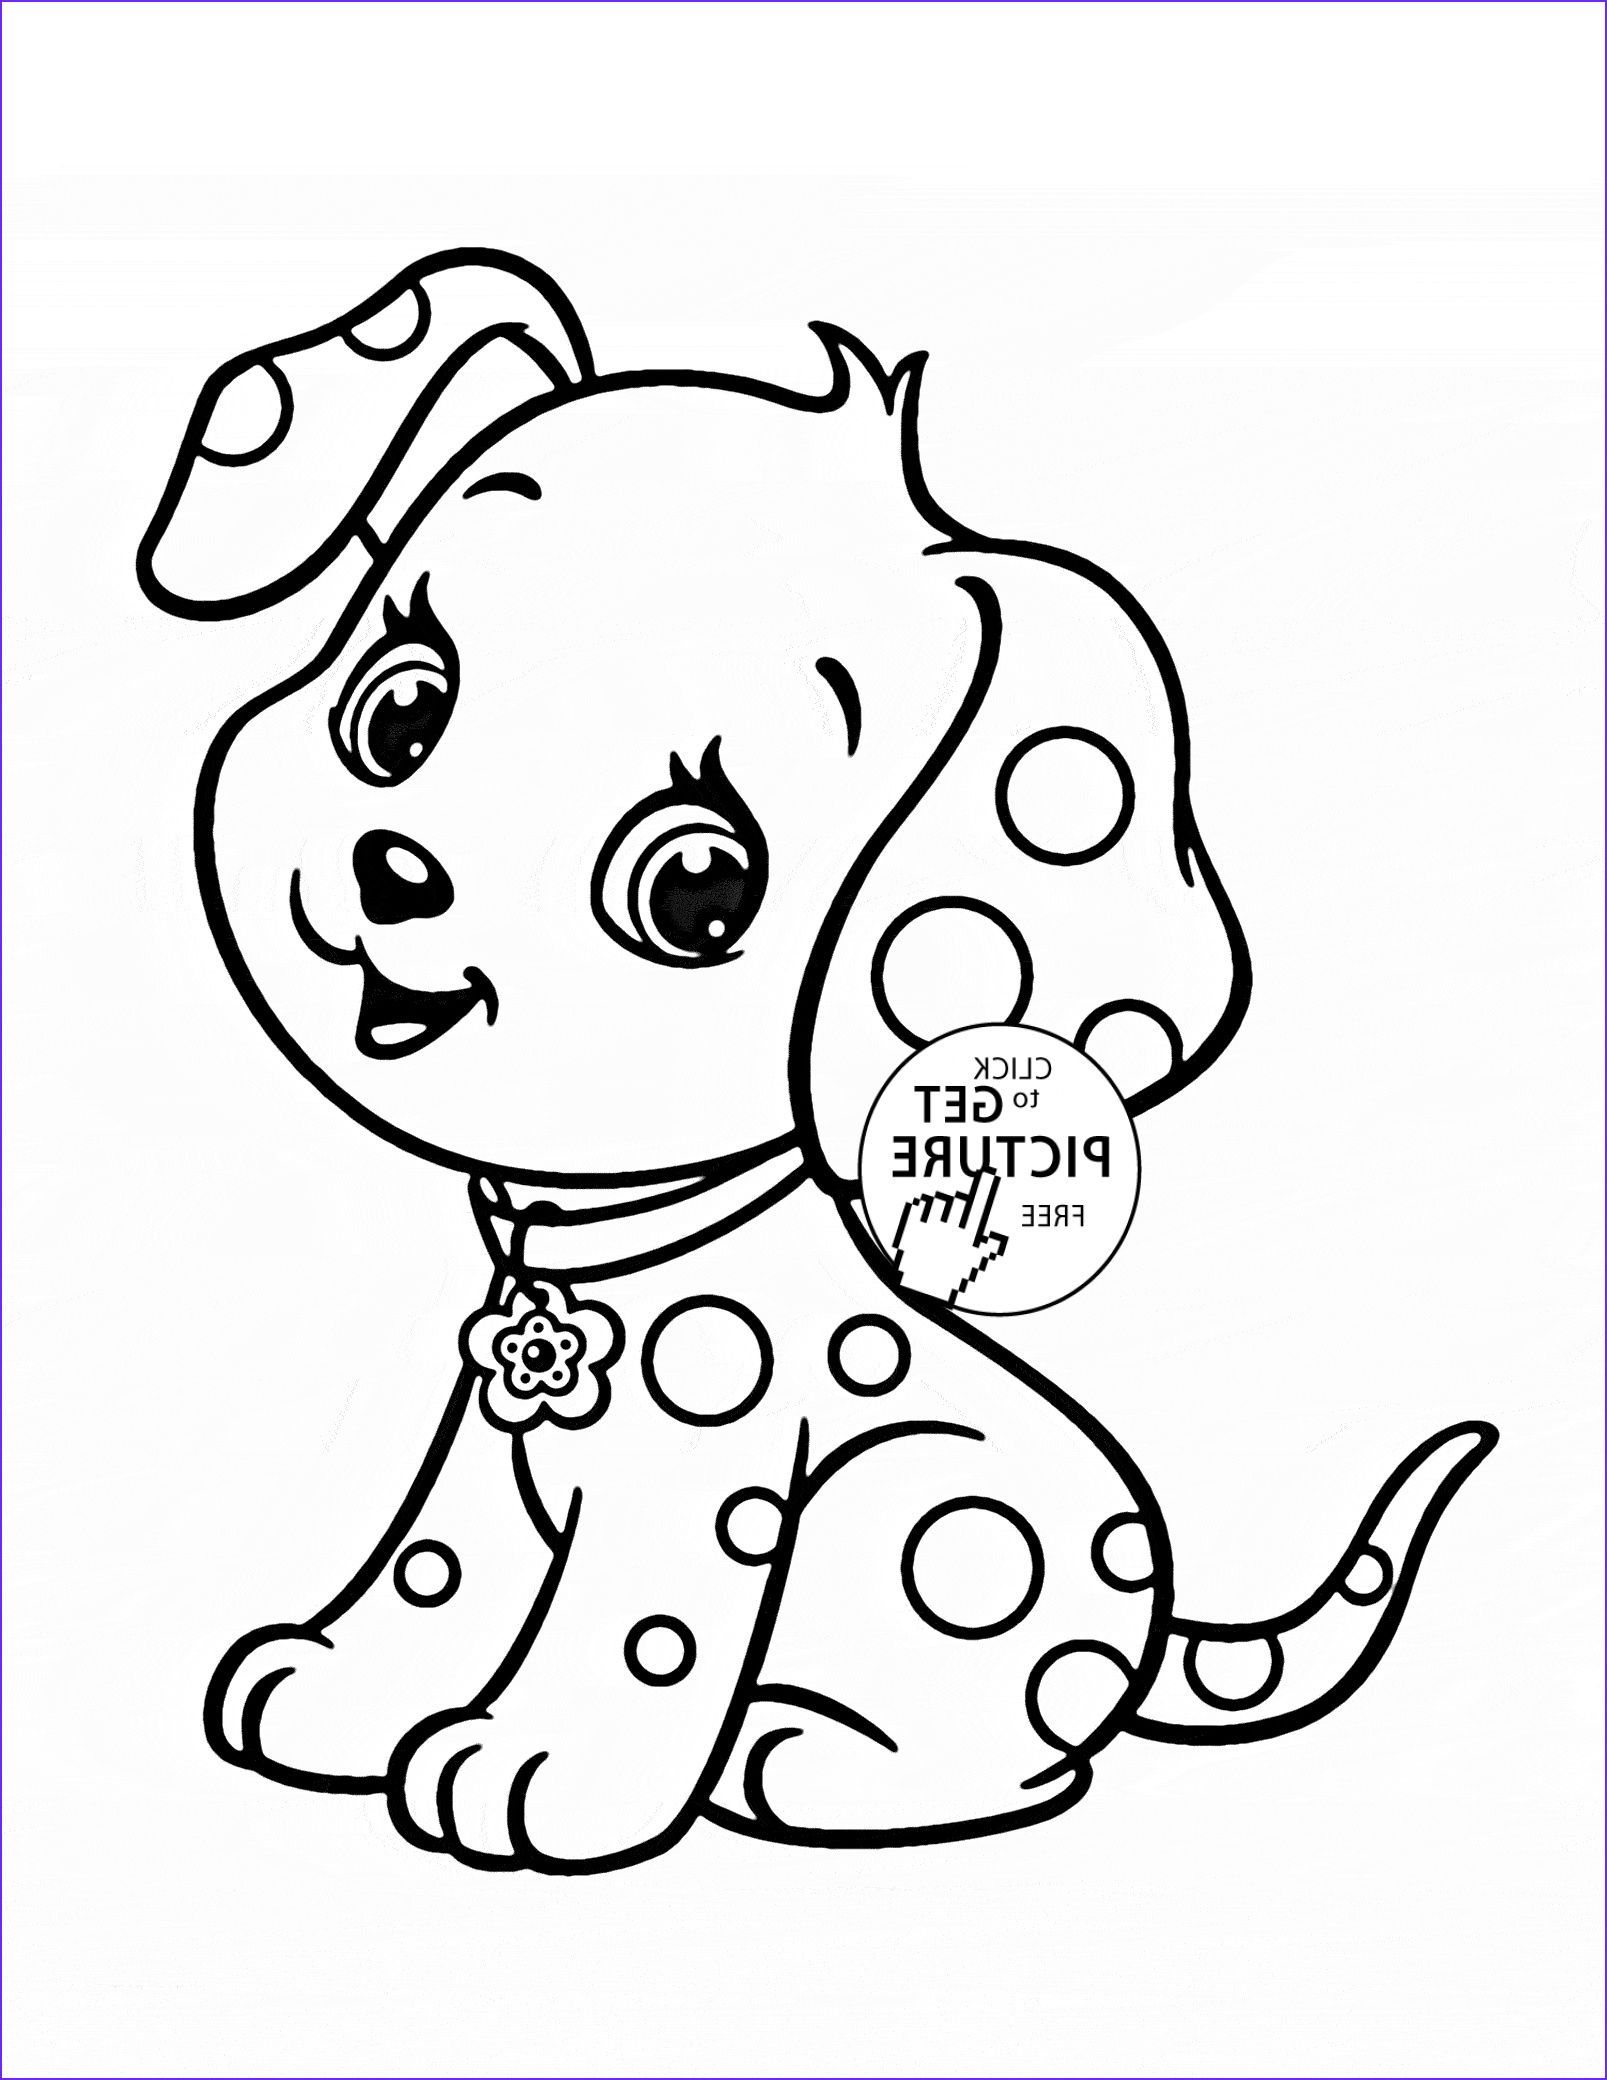 45 Cool Images Of Coloring Pages Of Puppies Quilt Patterns For Babies Malvorlage Einhorn Lustige Malvorlagen Disney Prinzessin Malvorlagen